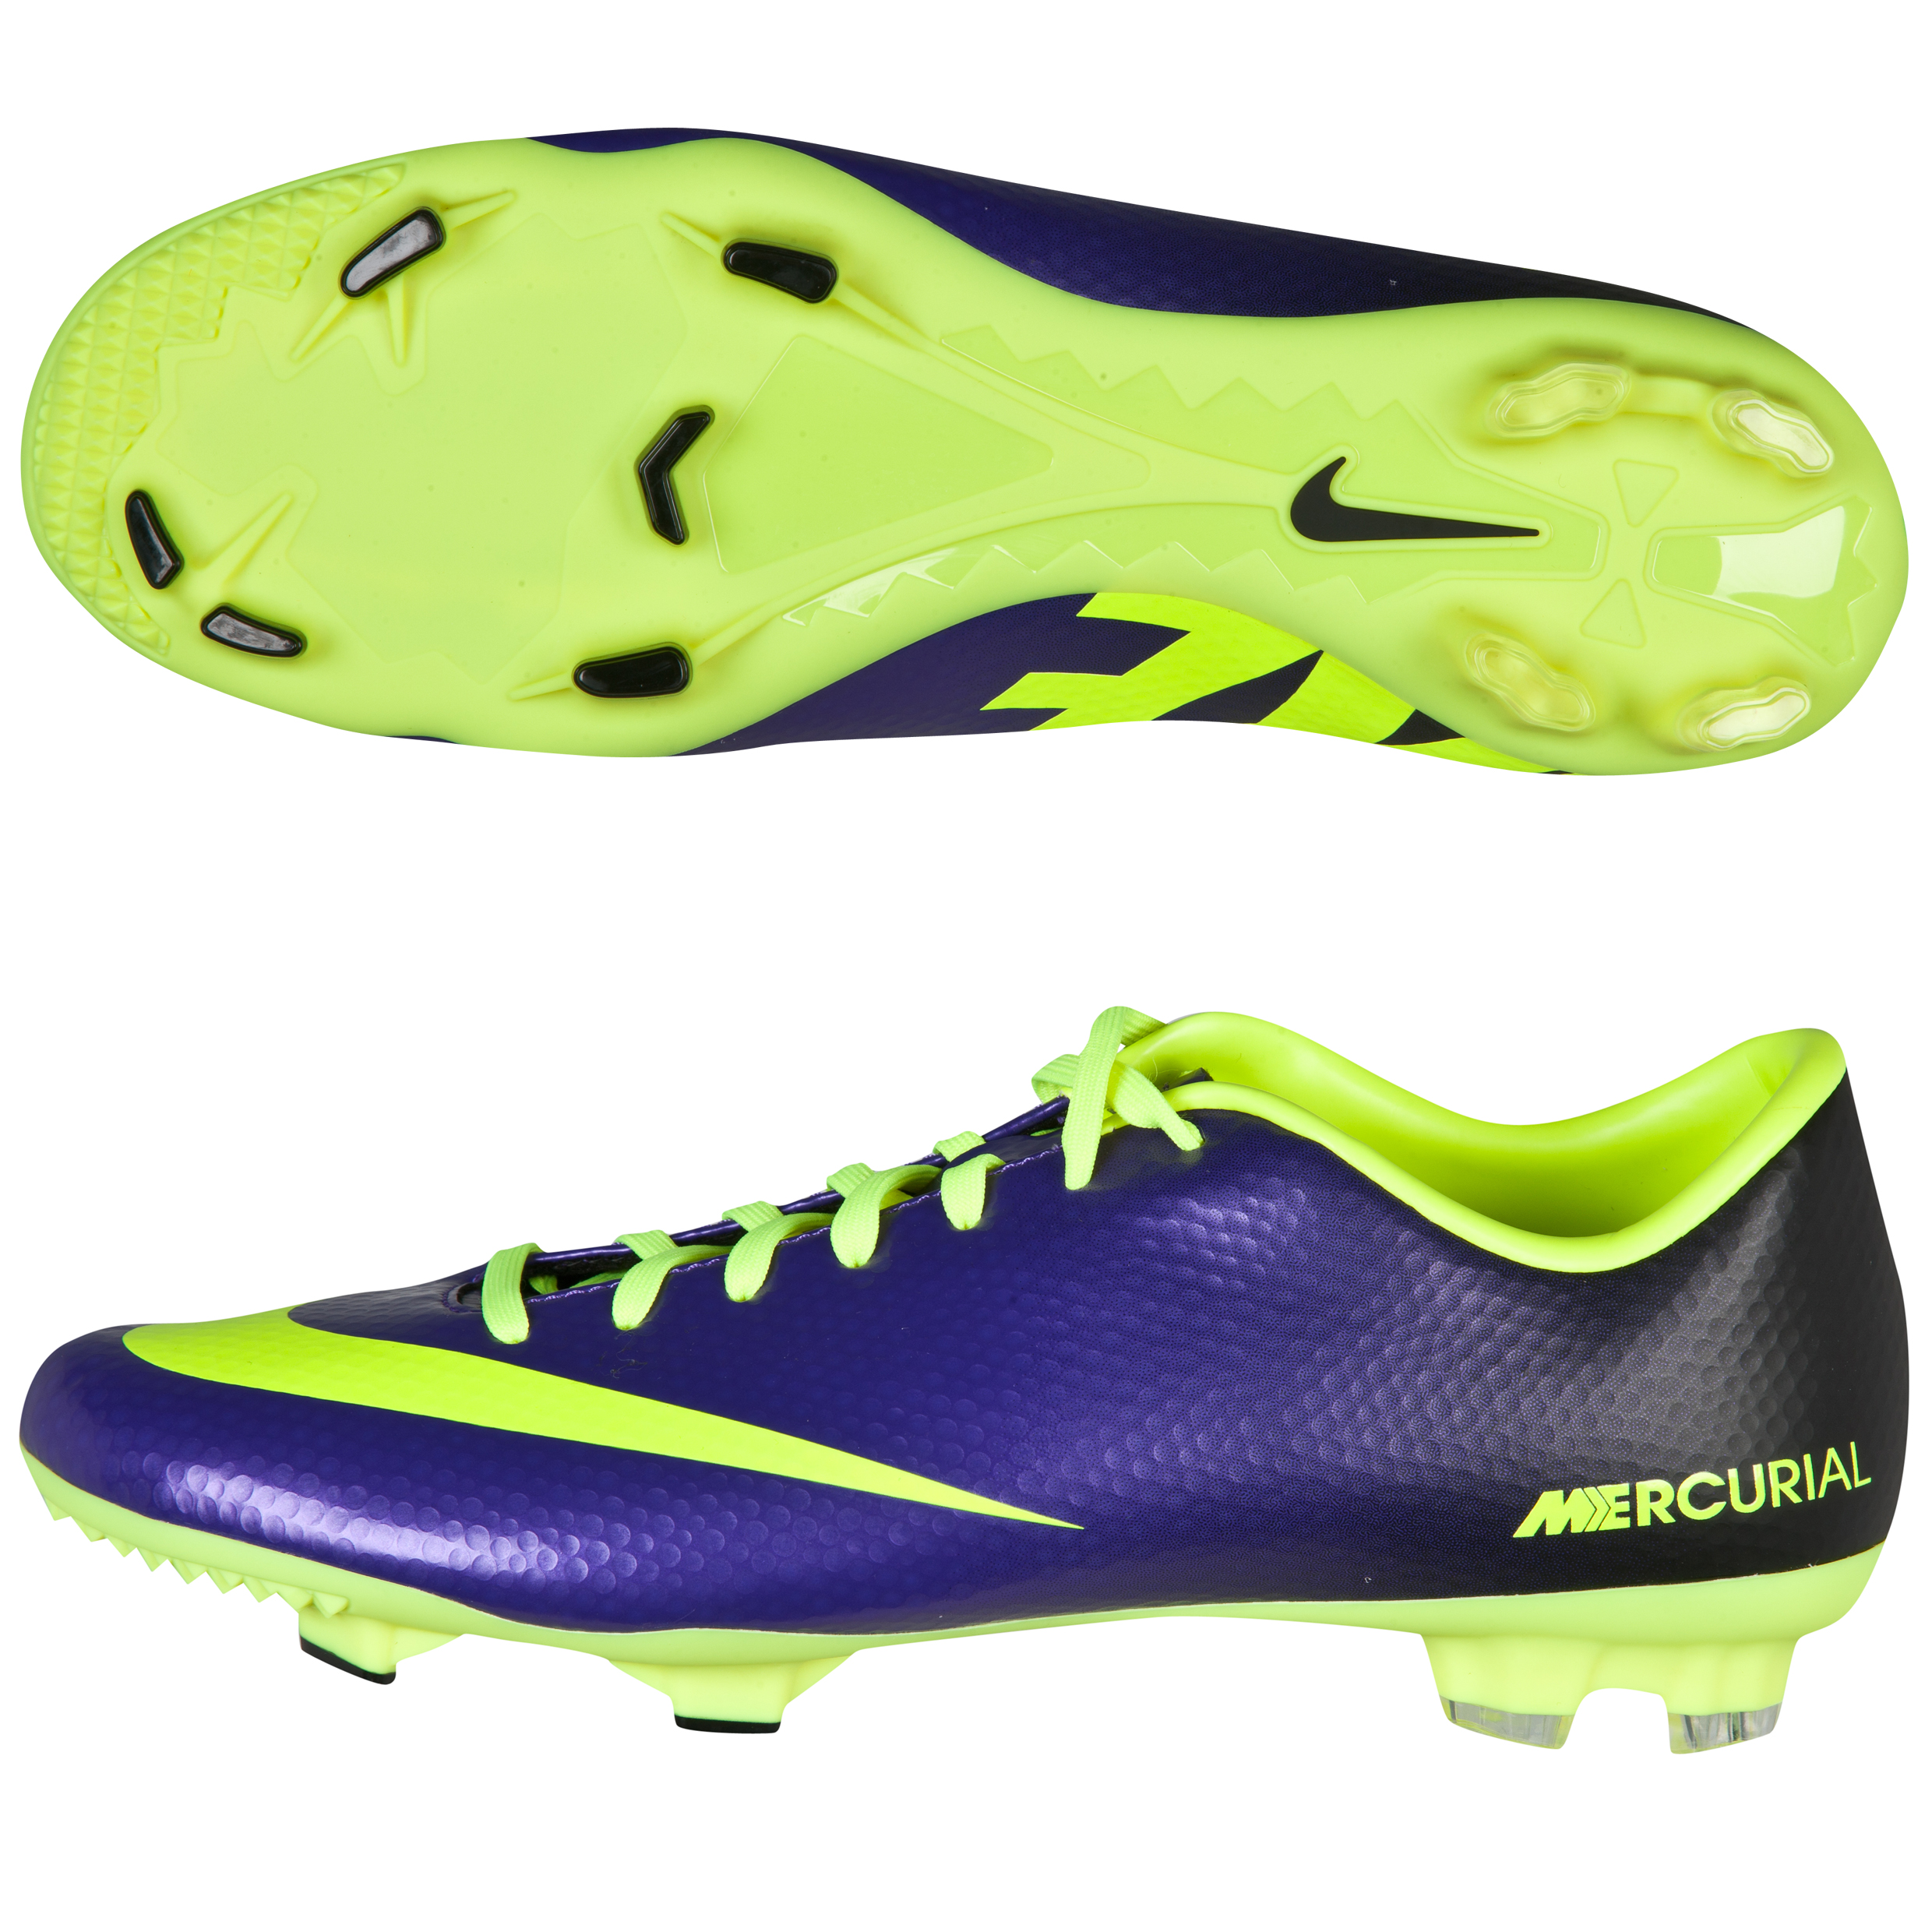 Nike Mecurial Victory lv Firm Ground Football Boots - Electro Purple /Volt /Black Purple